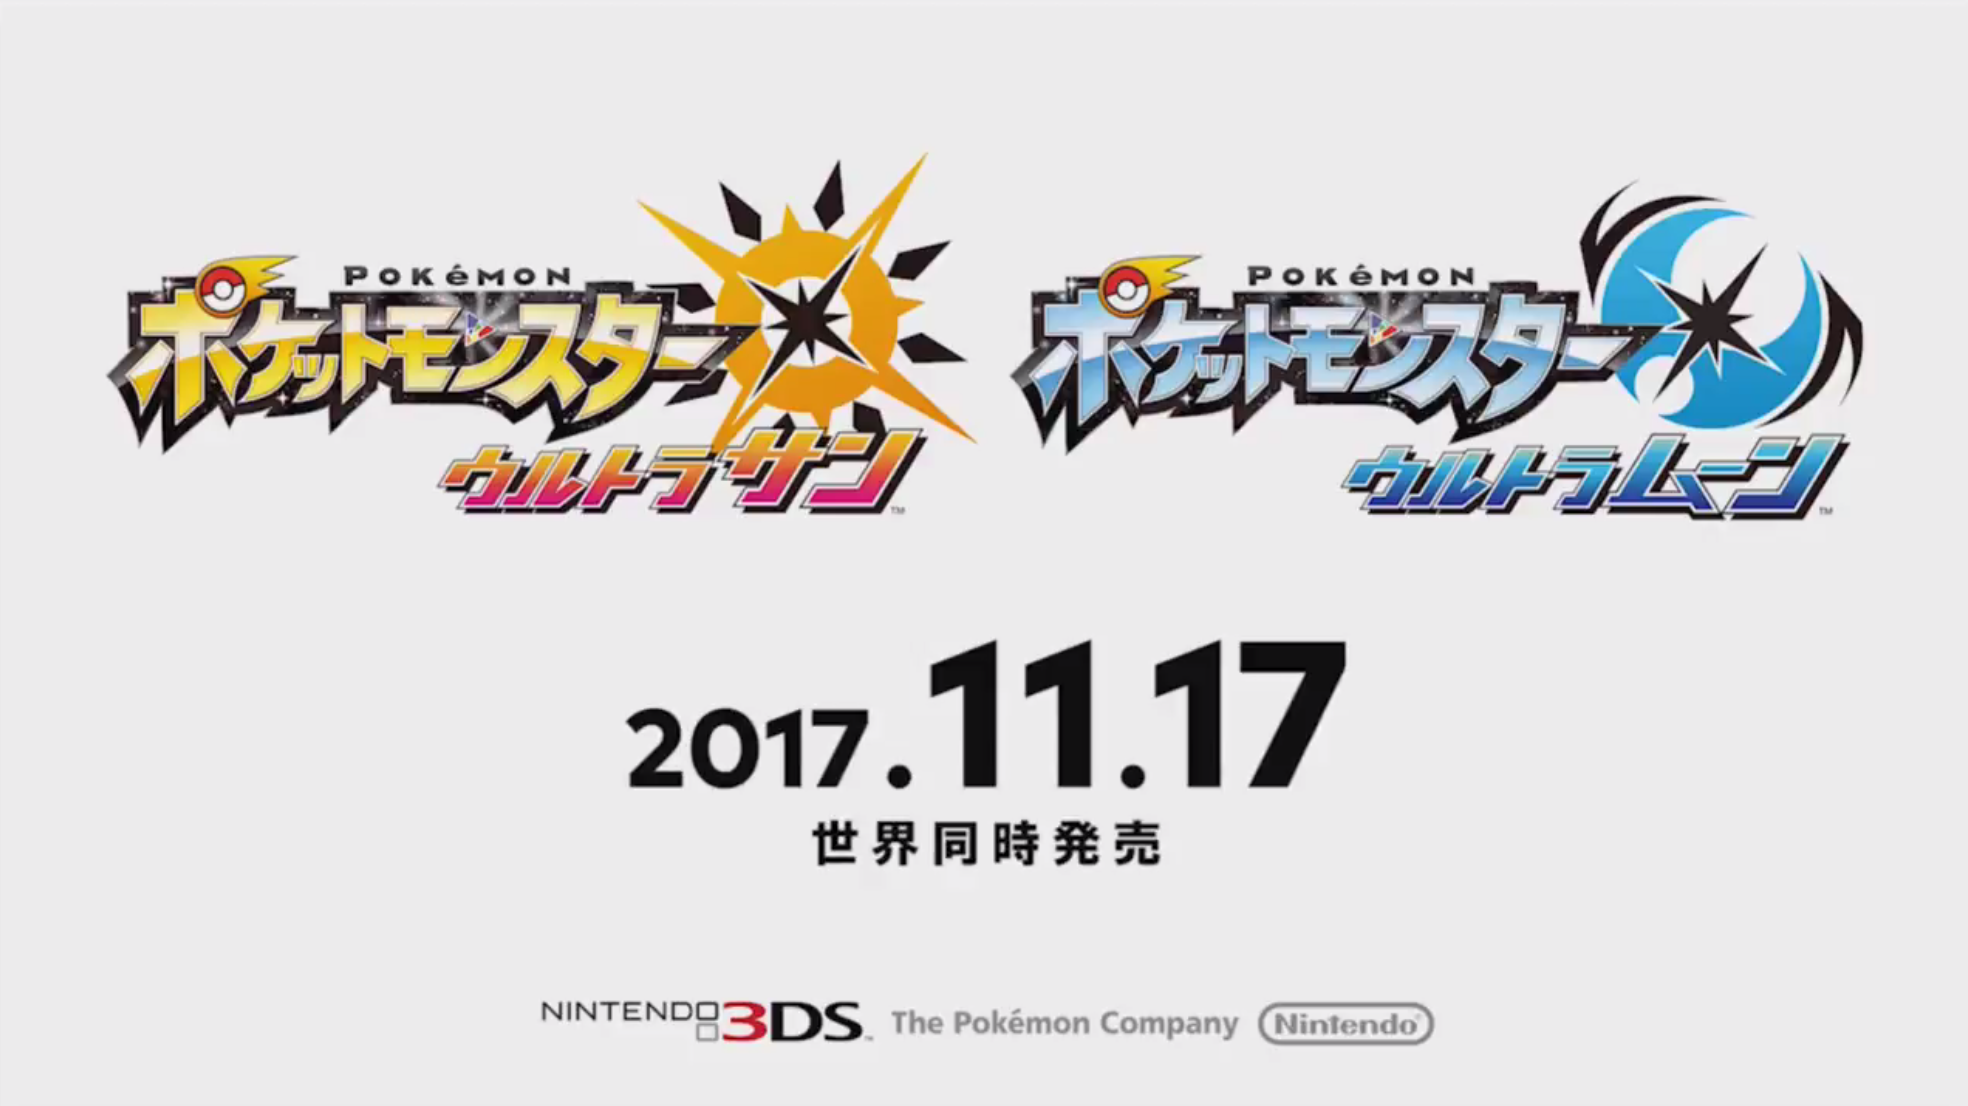 Pokémon Ultra Sun and Ultra Moon Game for Nintendo 3DS